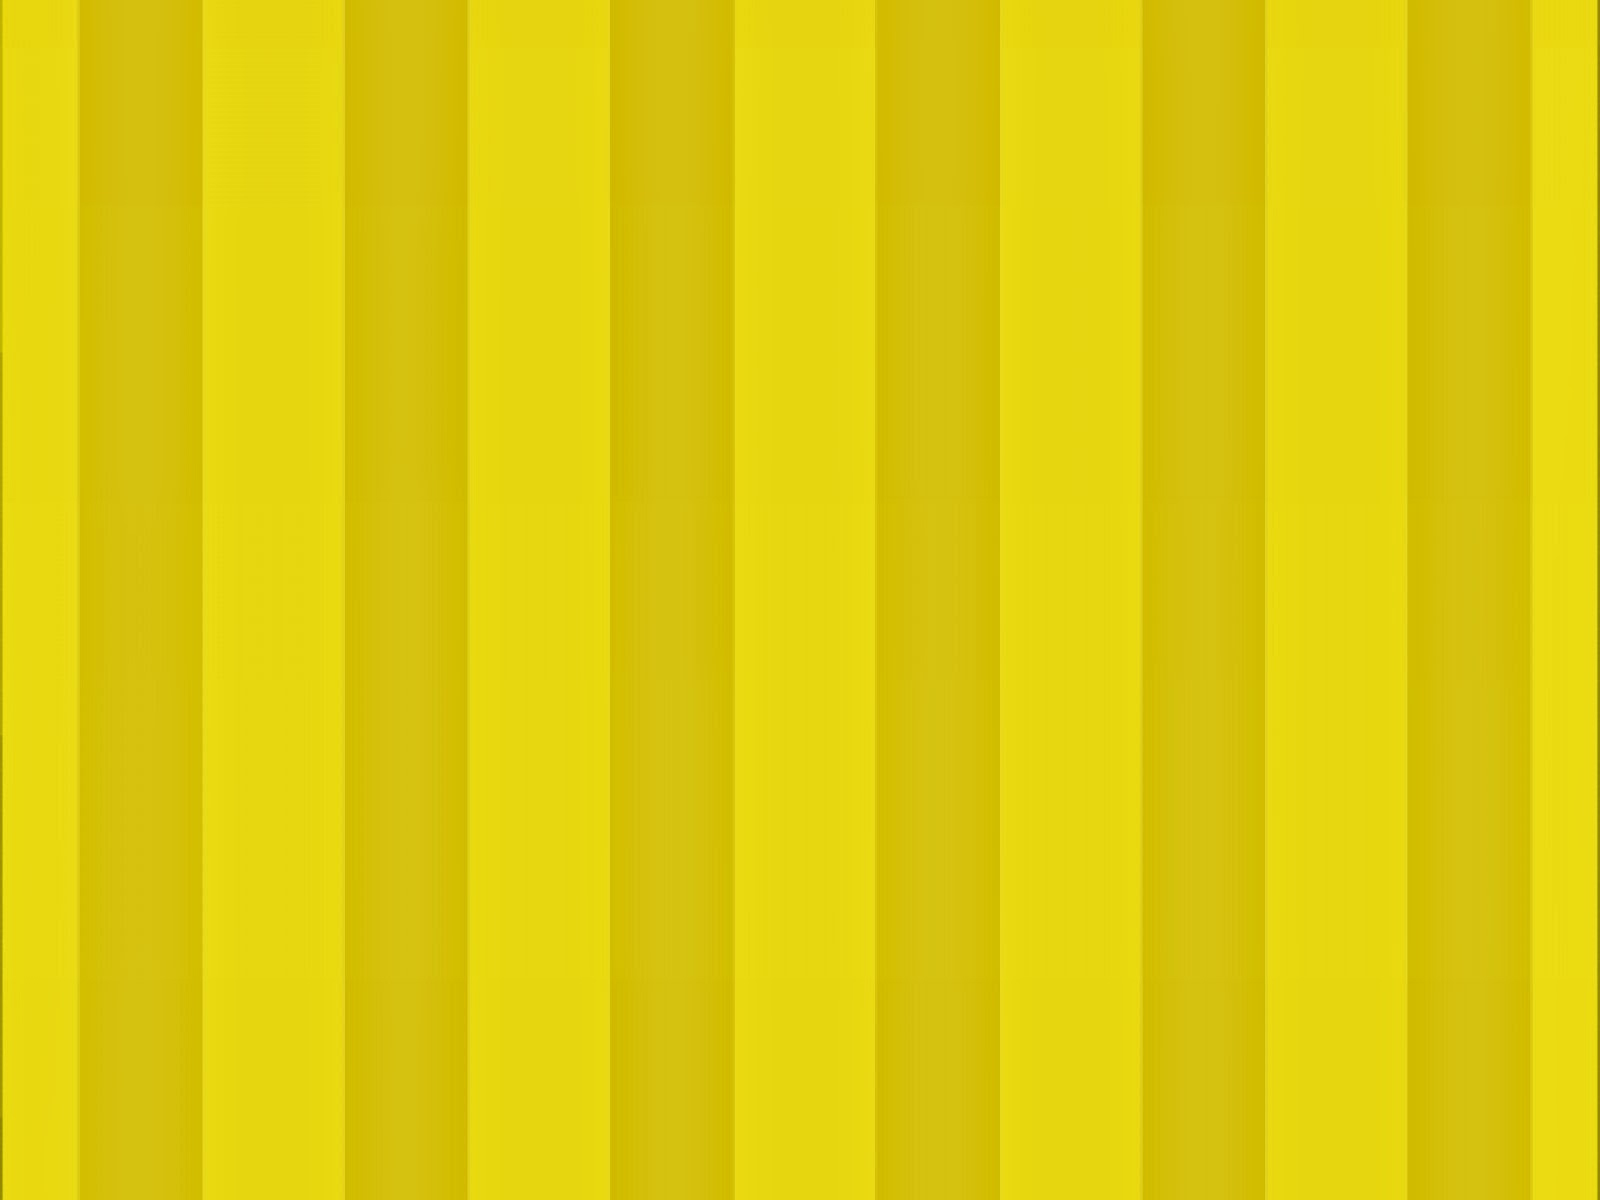 The Yellow Essay Topics Research Paper On The Yellow